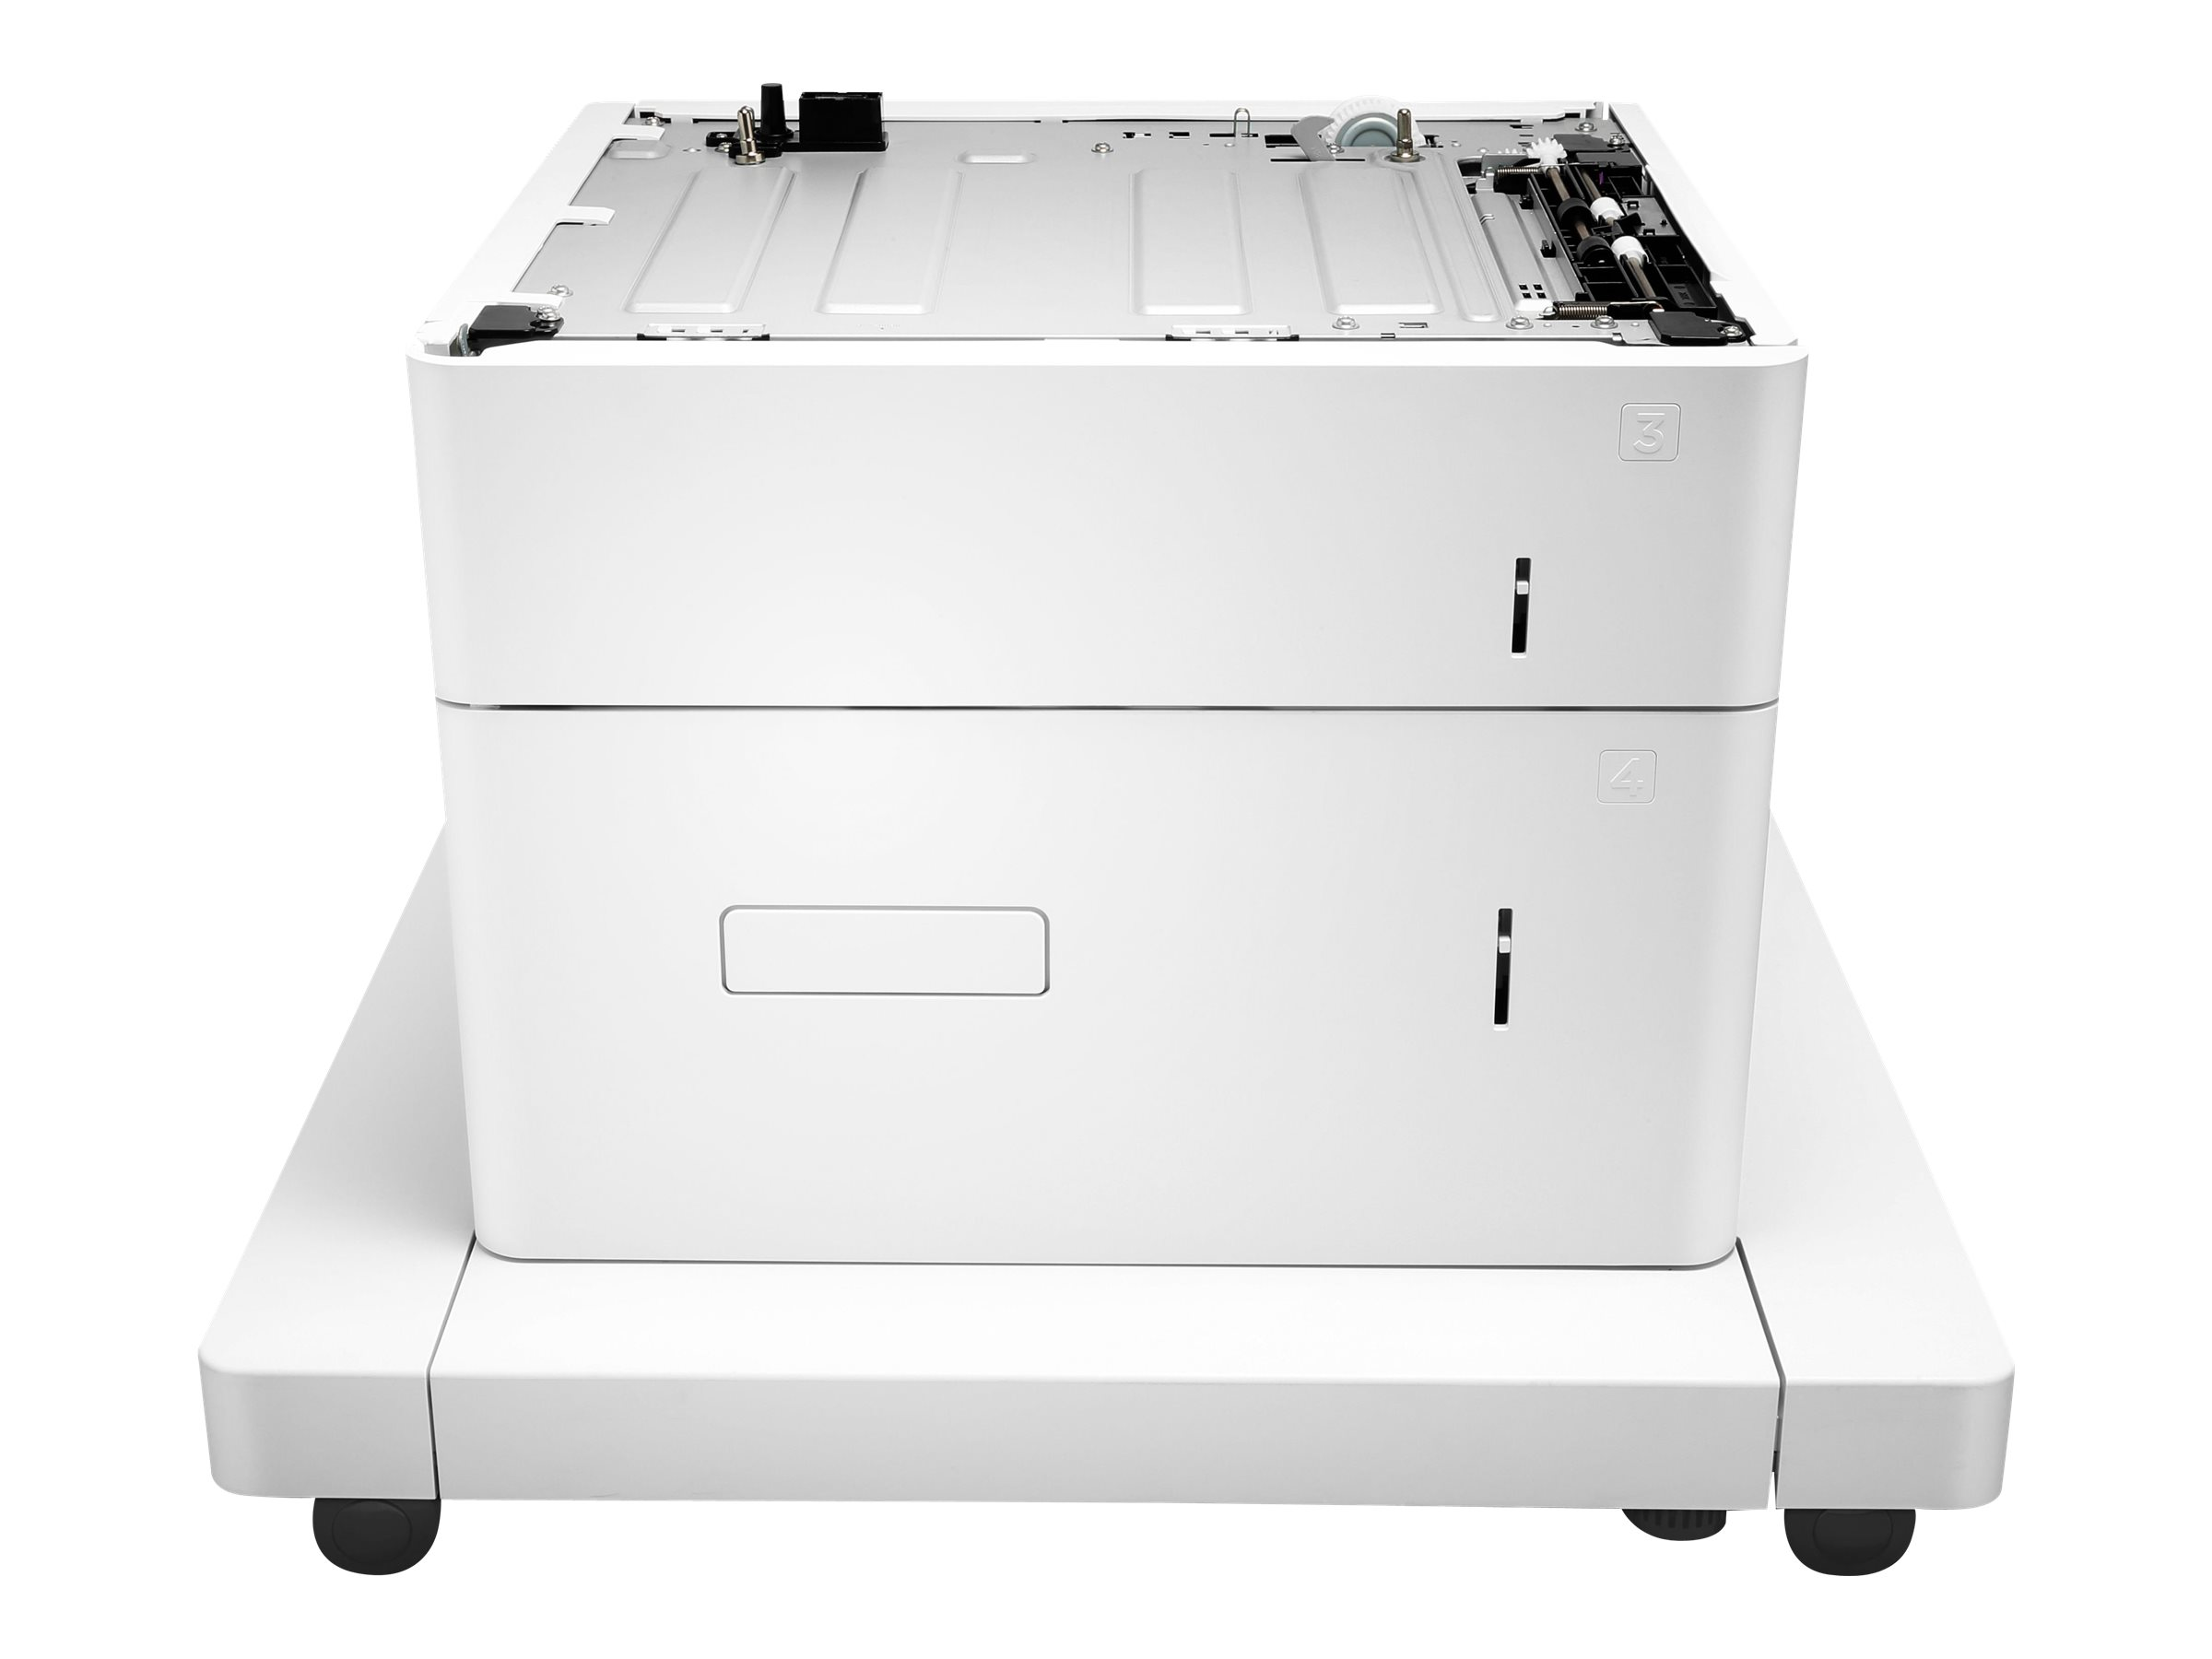 HP Paper Feeder and Stand - printer base with media feeder - 2550 sheets